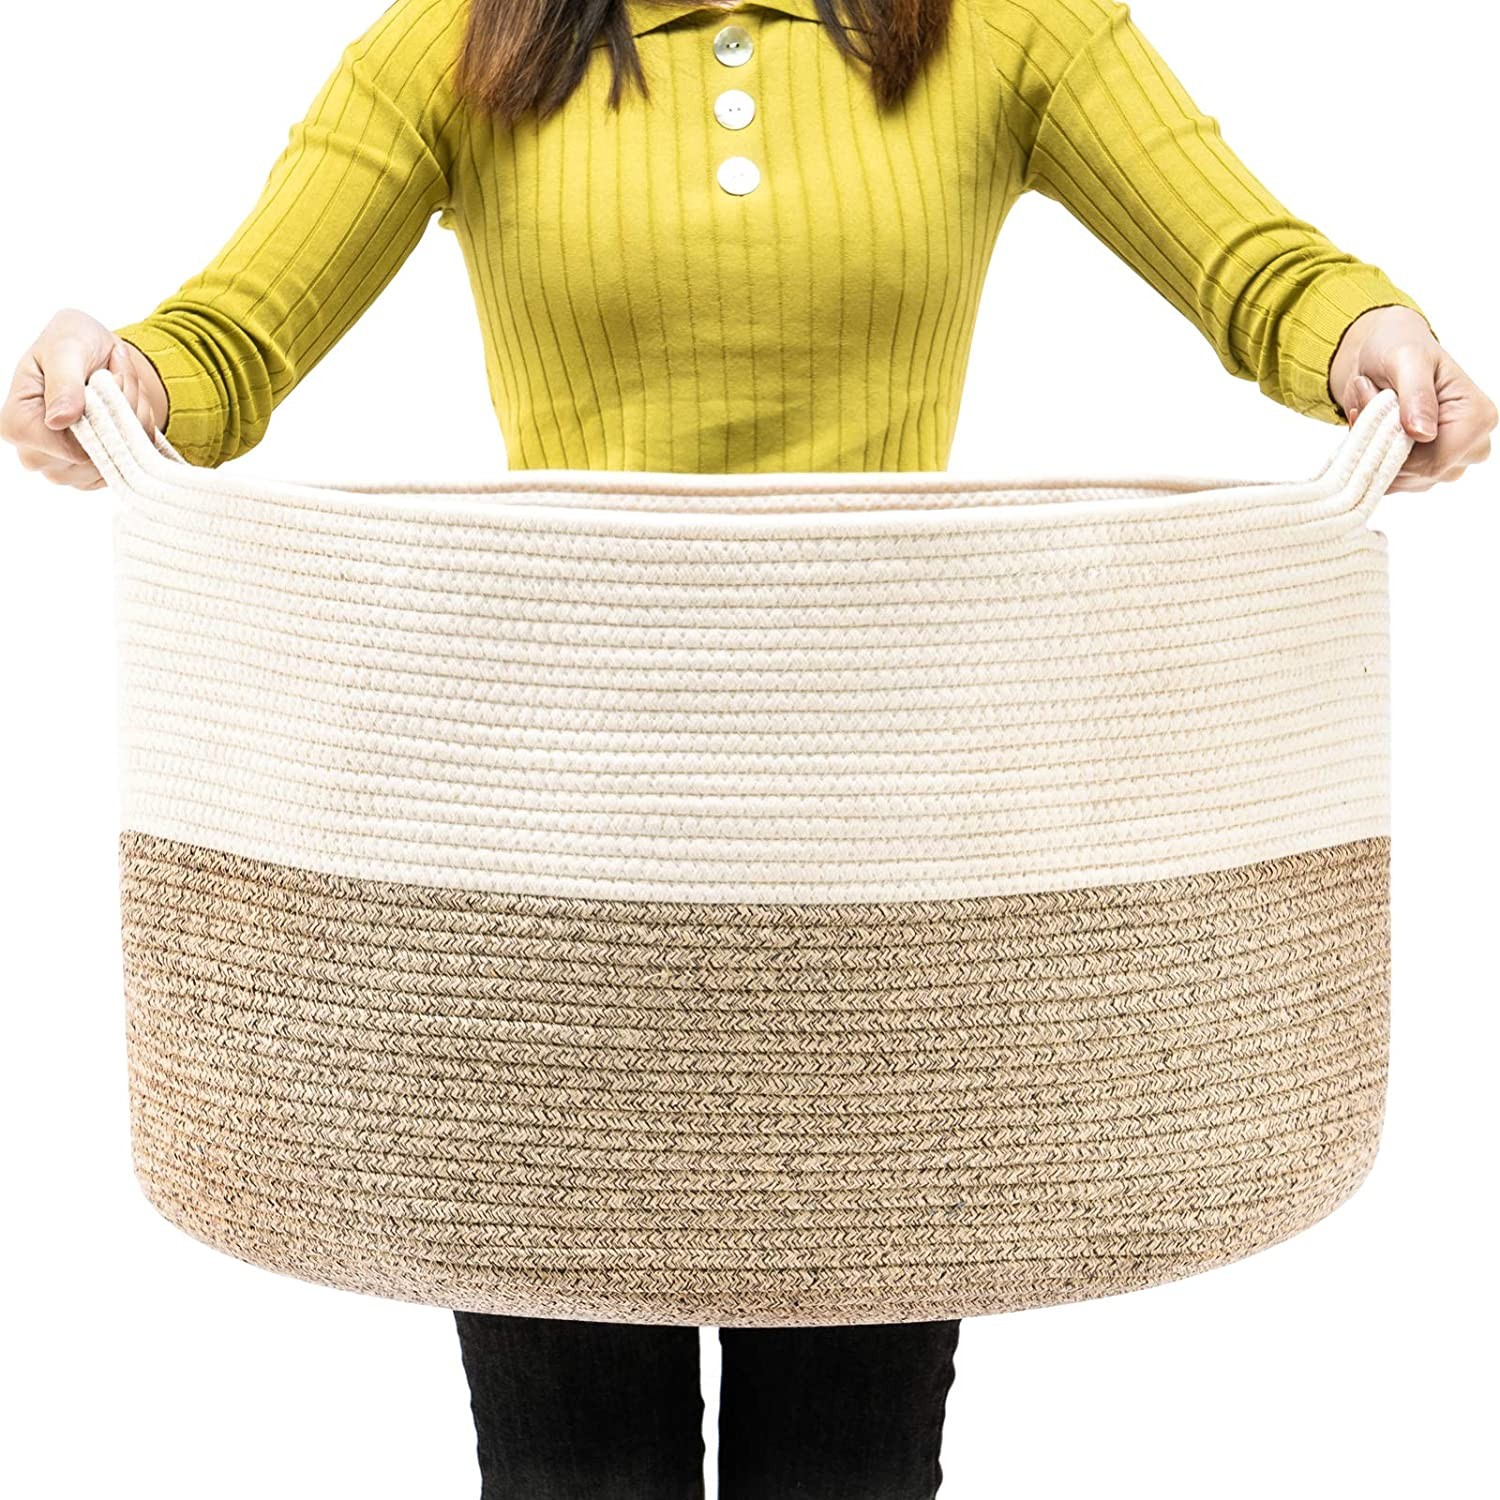 TECHMILLY Laundry Basket XXL Extra Large 88L Cotton Rope,Woven Baby Basket Clothes Hamper with Handles -Brown